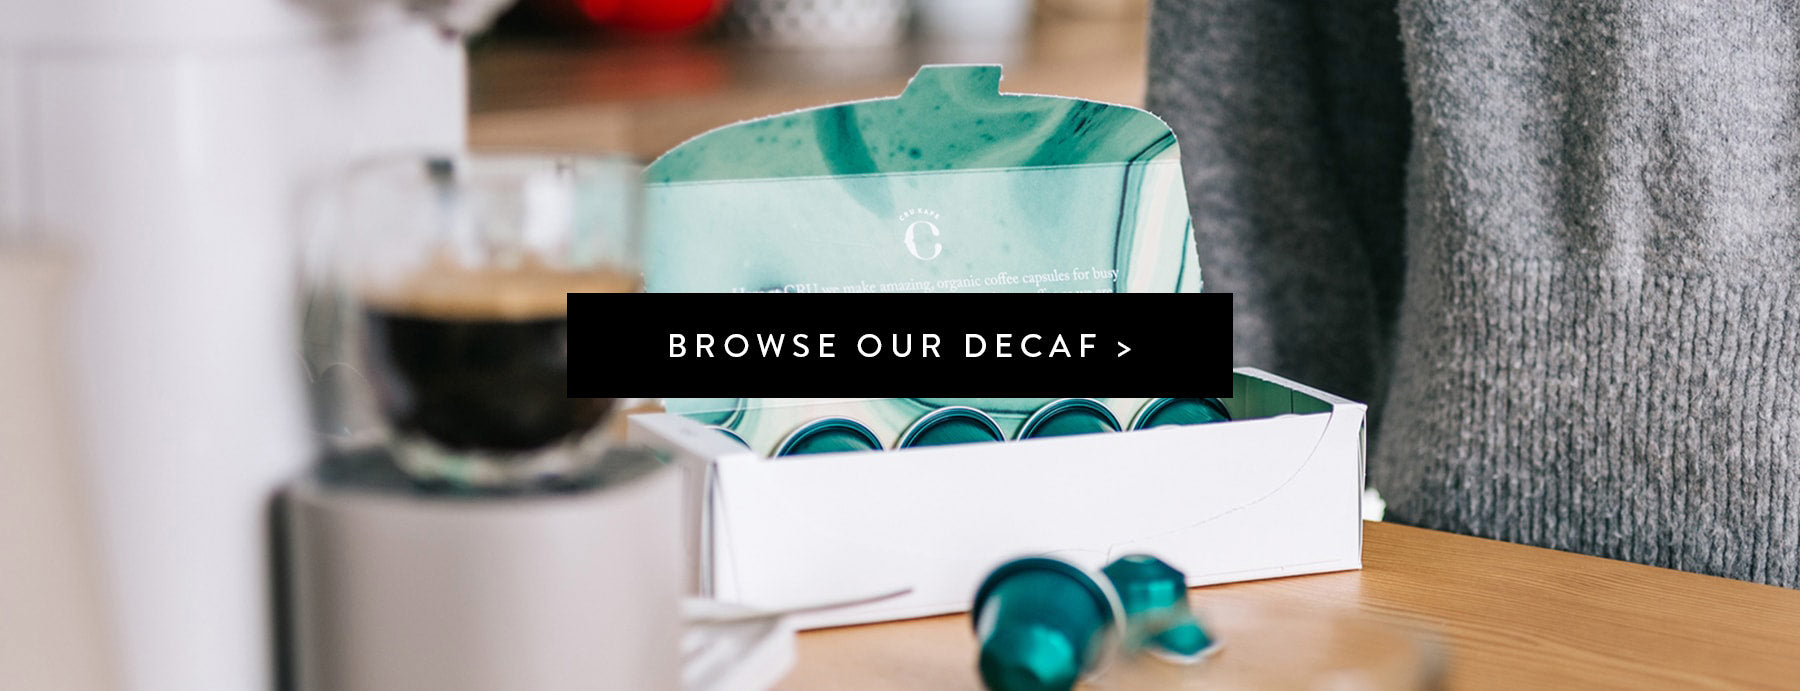 browse our decaf here